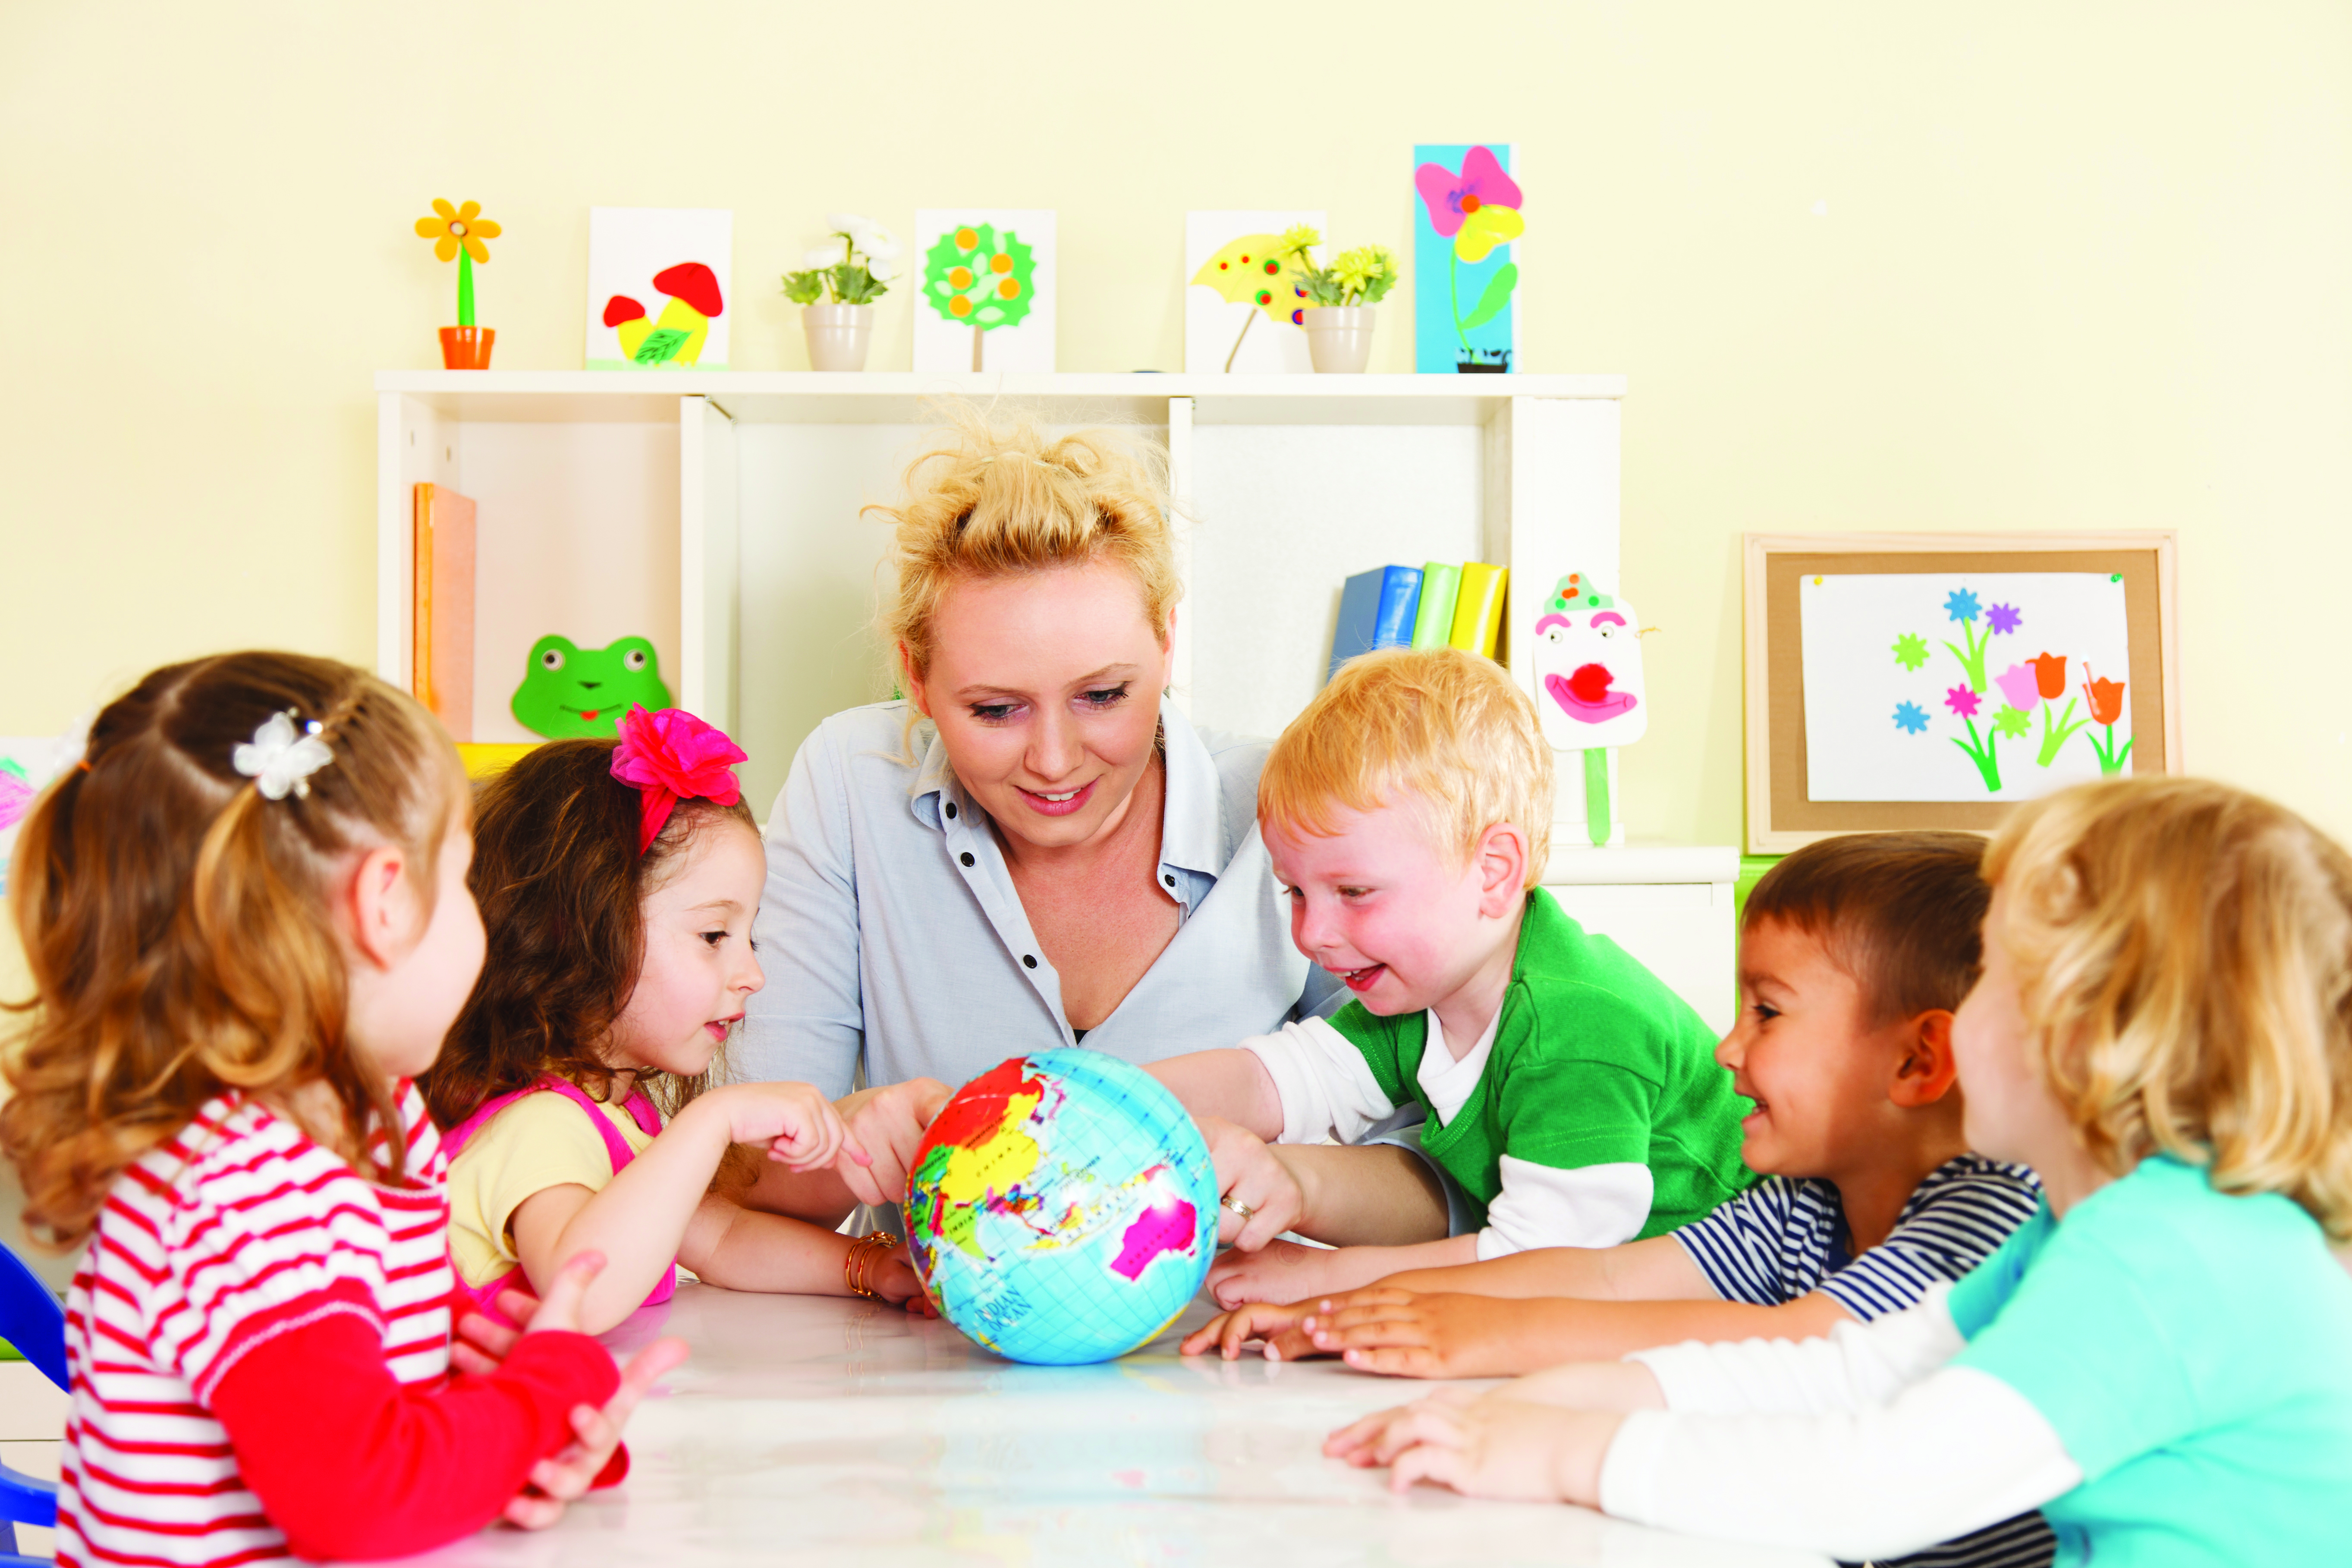 How to Select a Child Care Giver